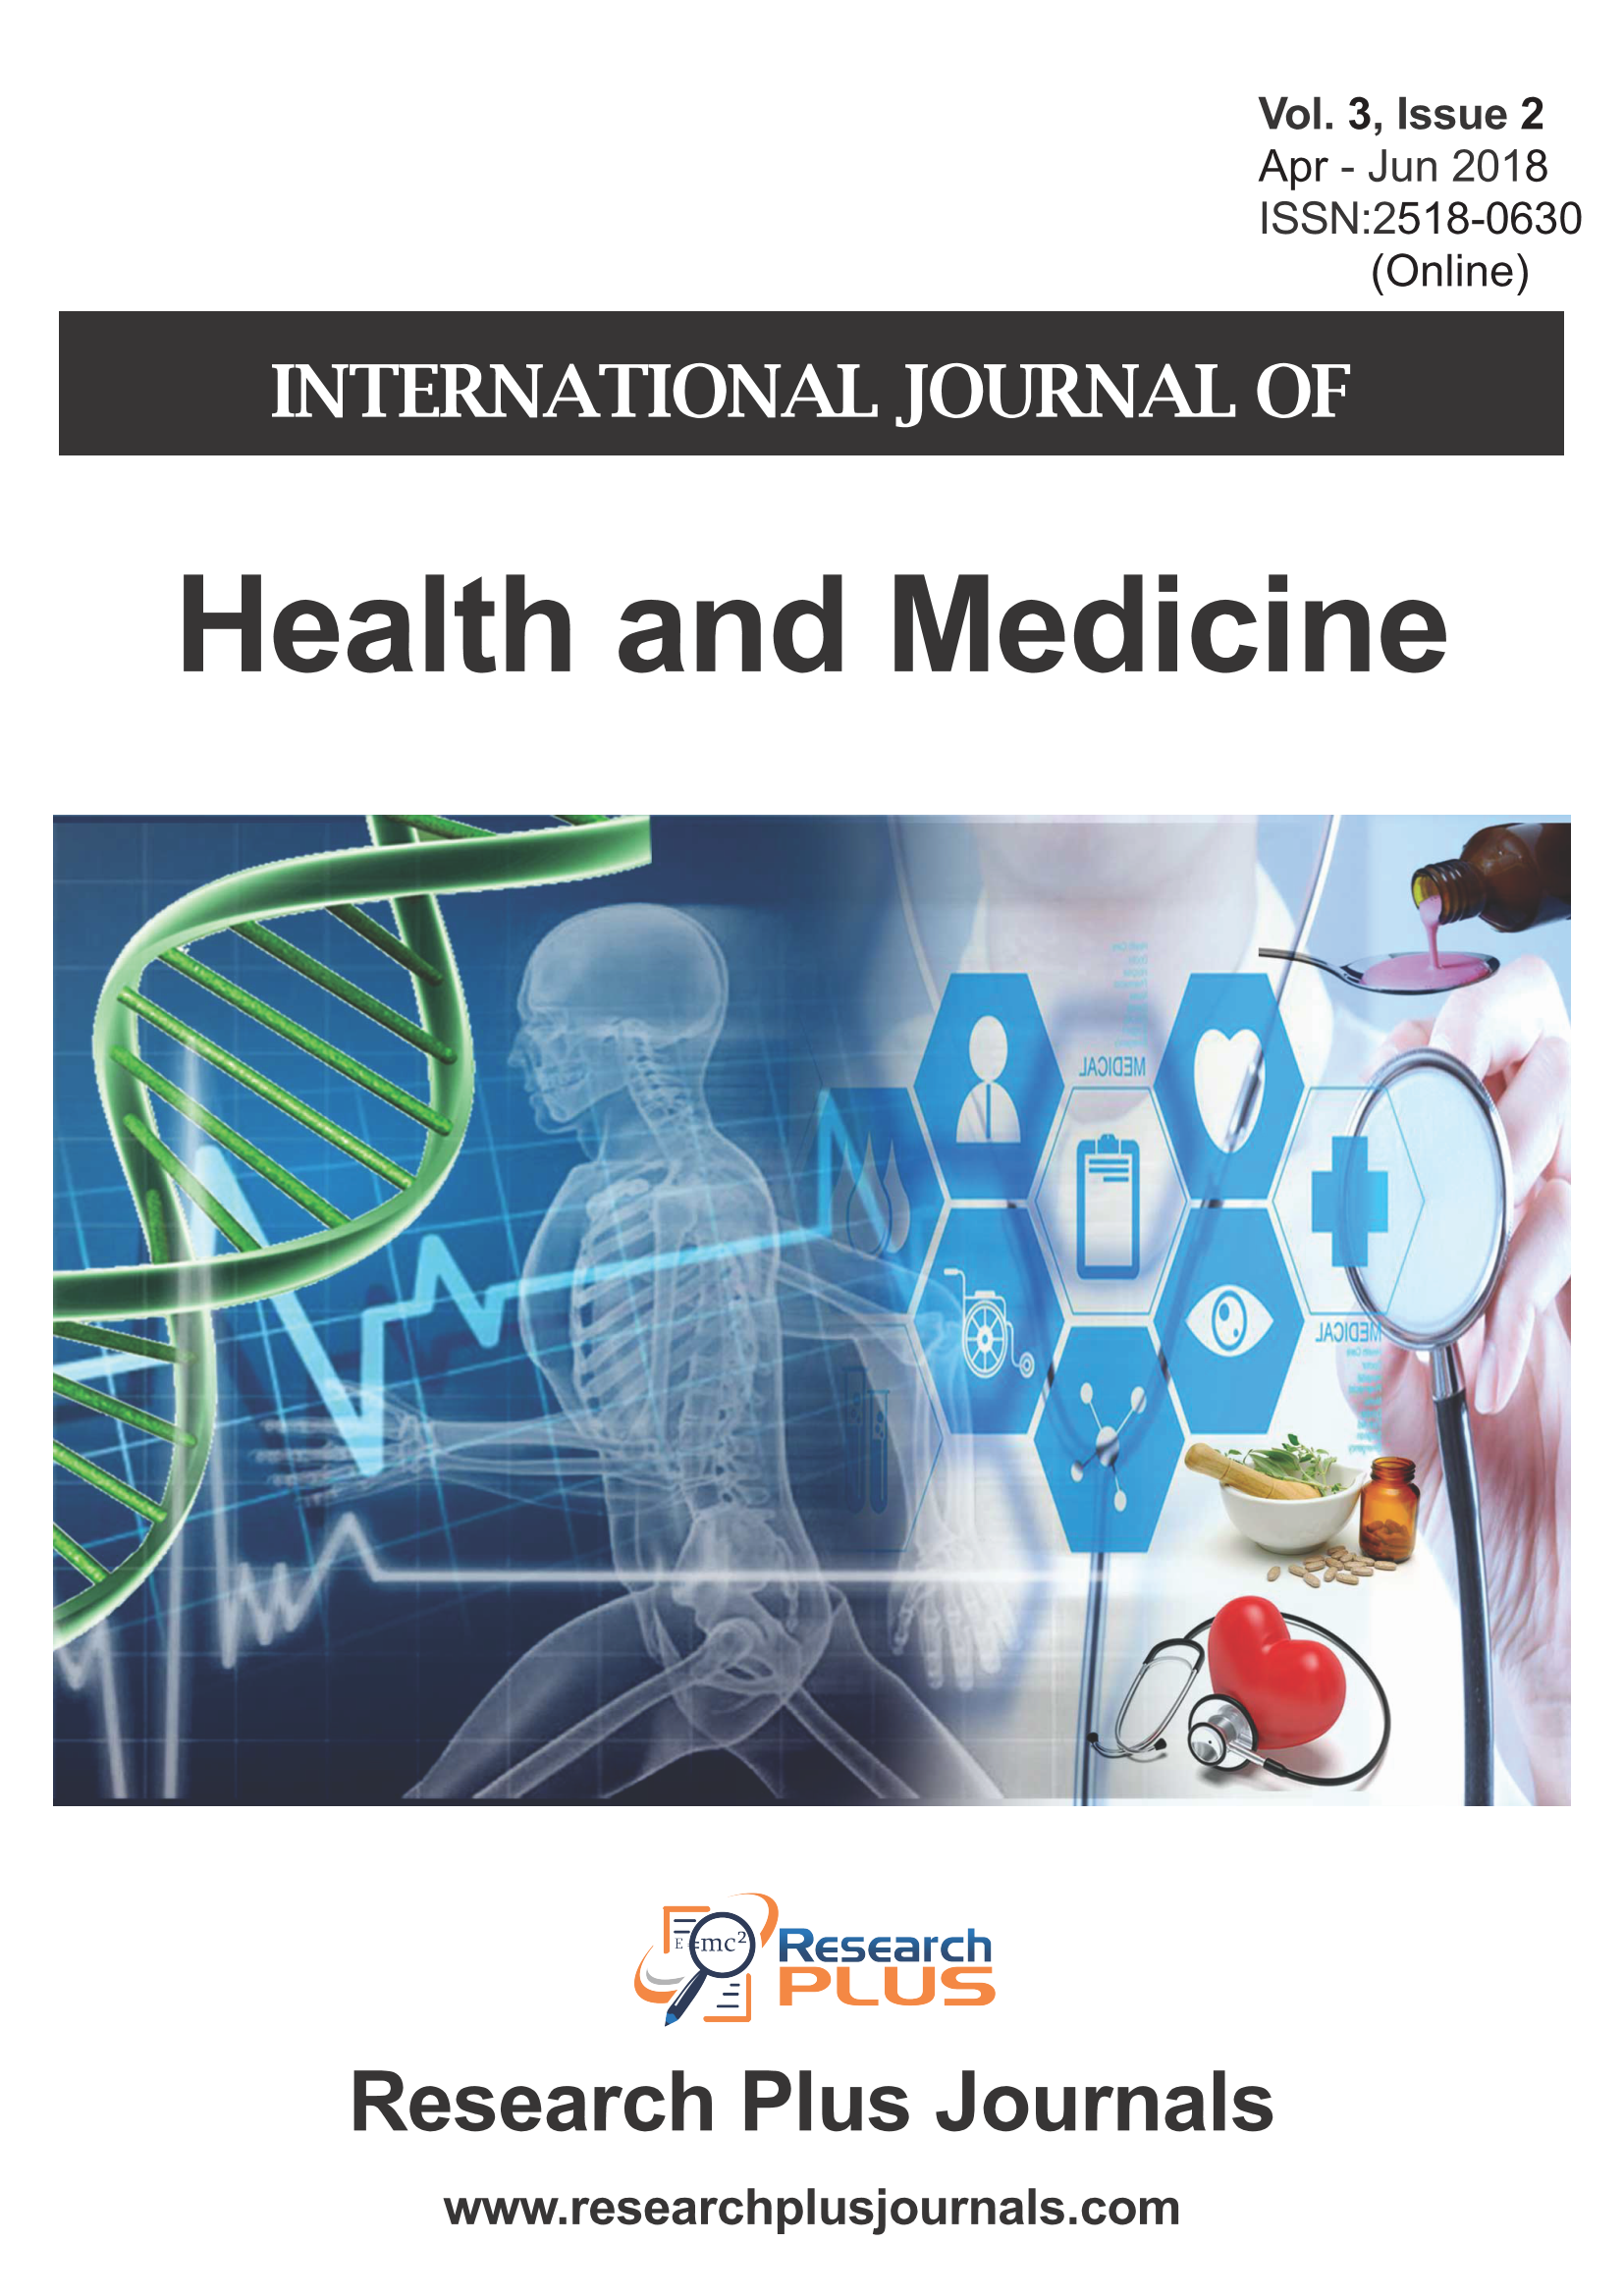 Volume 3, Issue 2, International Journal of Health and Medicine (IJHM) (Online ISSN: 2518-0630)